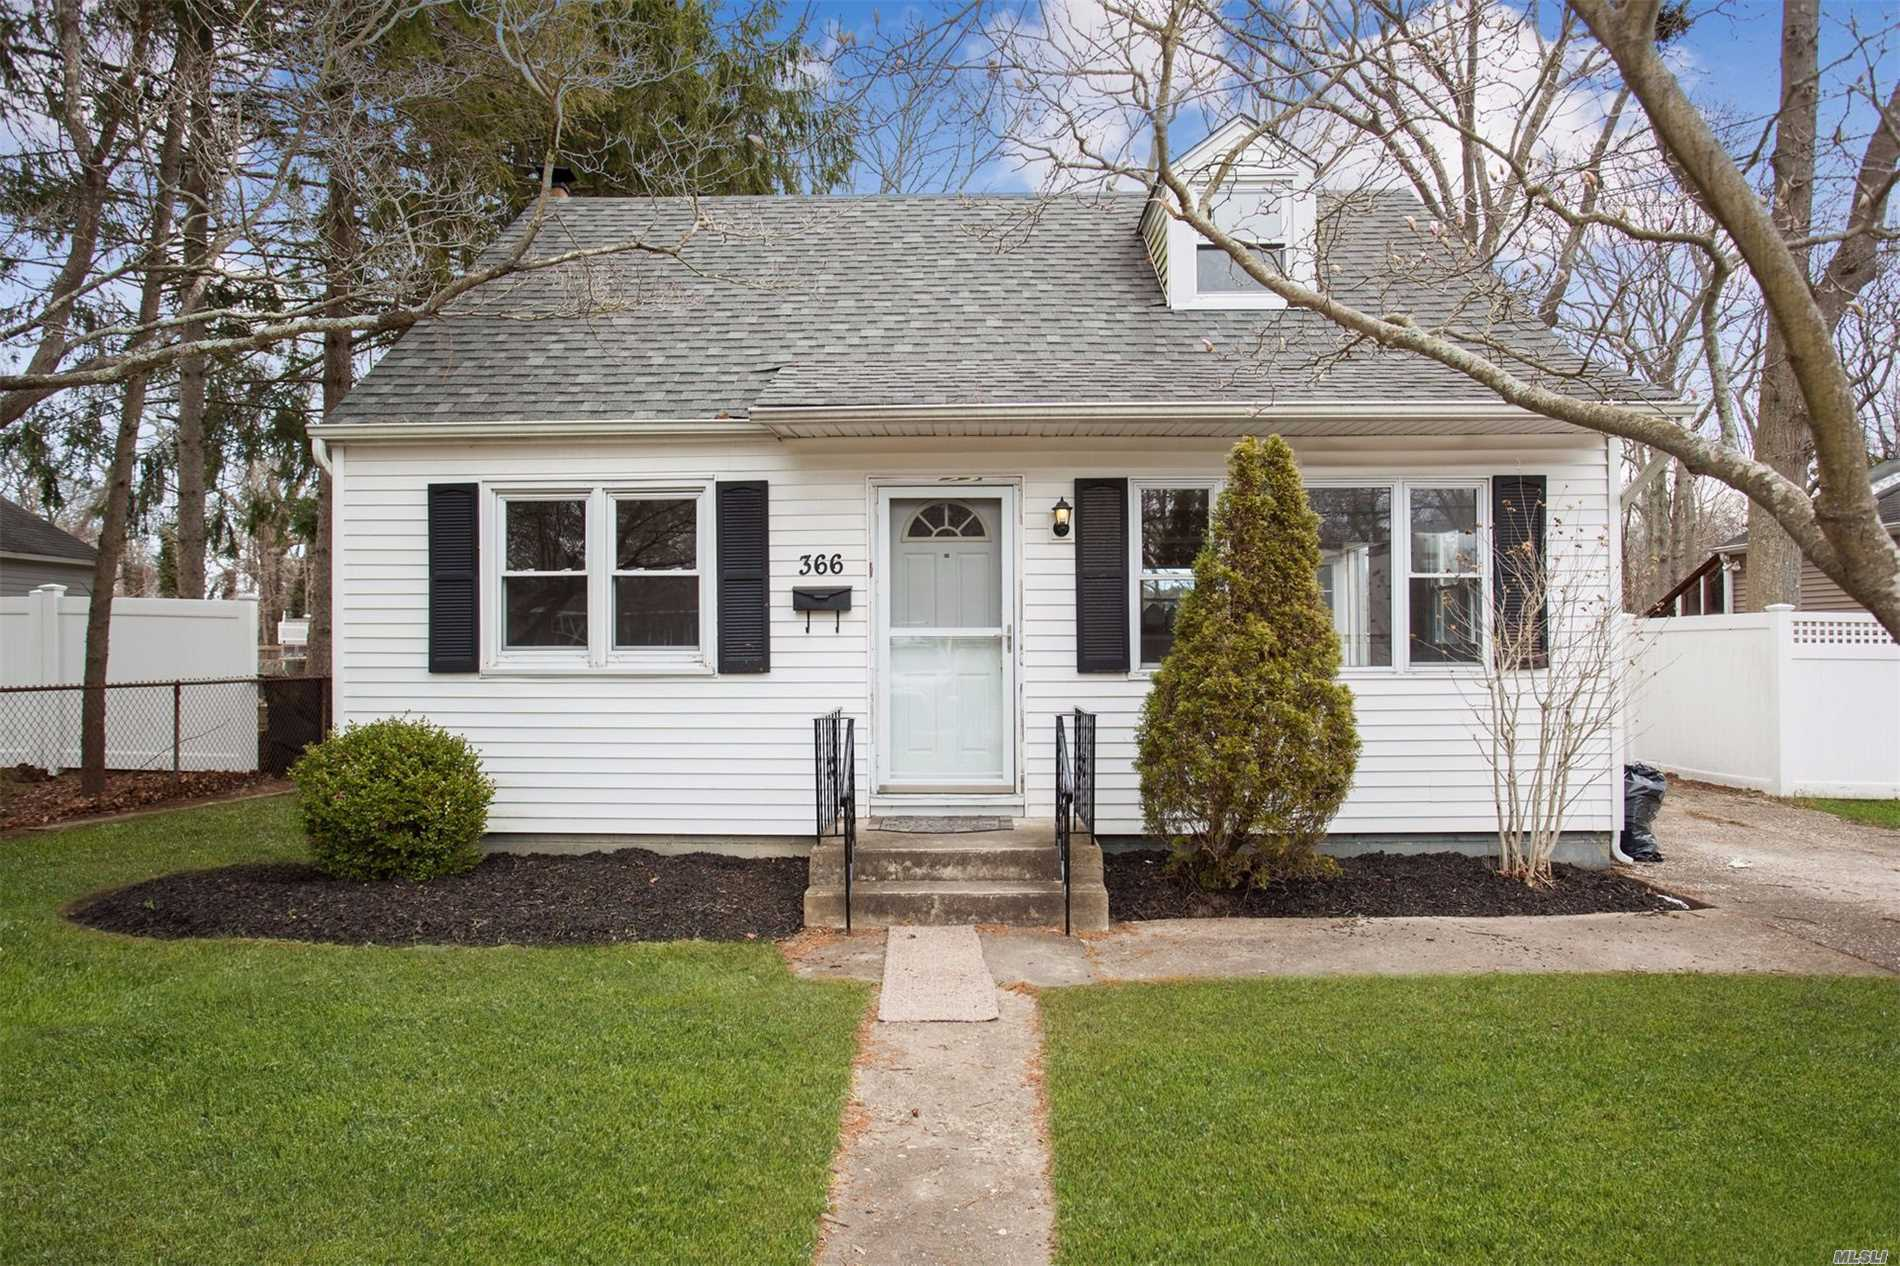 Come see this lovely 4 Bedroom 1 Bath Cape all ready to move in - Updated Kitchen w/New Stainless Steel Appliances, Freshly painted, New Carpet & Flooring, Full Unfinished Basement with Outside Entrance, Large Property, Longwood Schools and Super Low Taxes - $5594.29 - After Star Rebate $4378.29